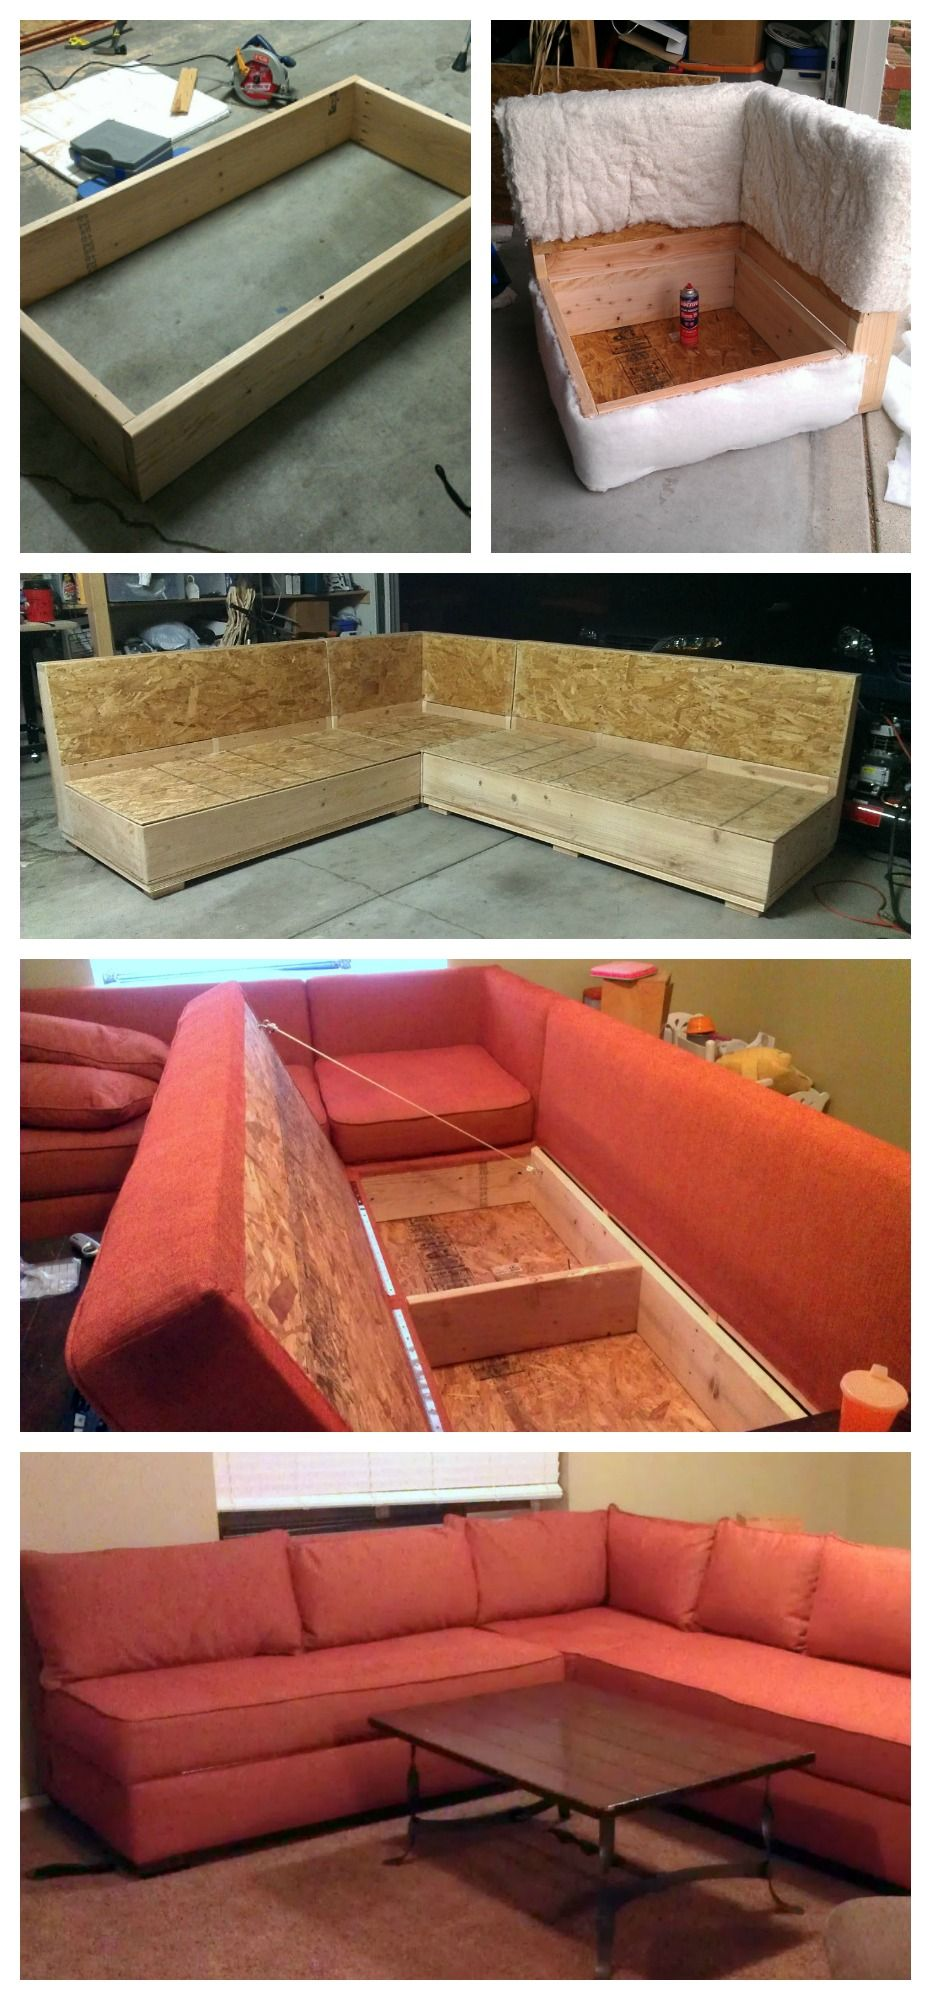 Diy Sofa Sectional With Storage Uses Bought Cushions Just Build Base And Staple Fabric Over It